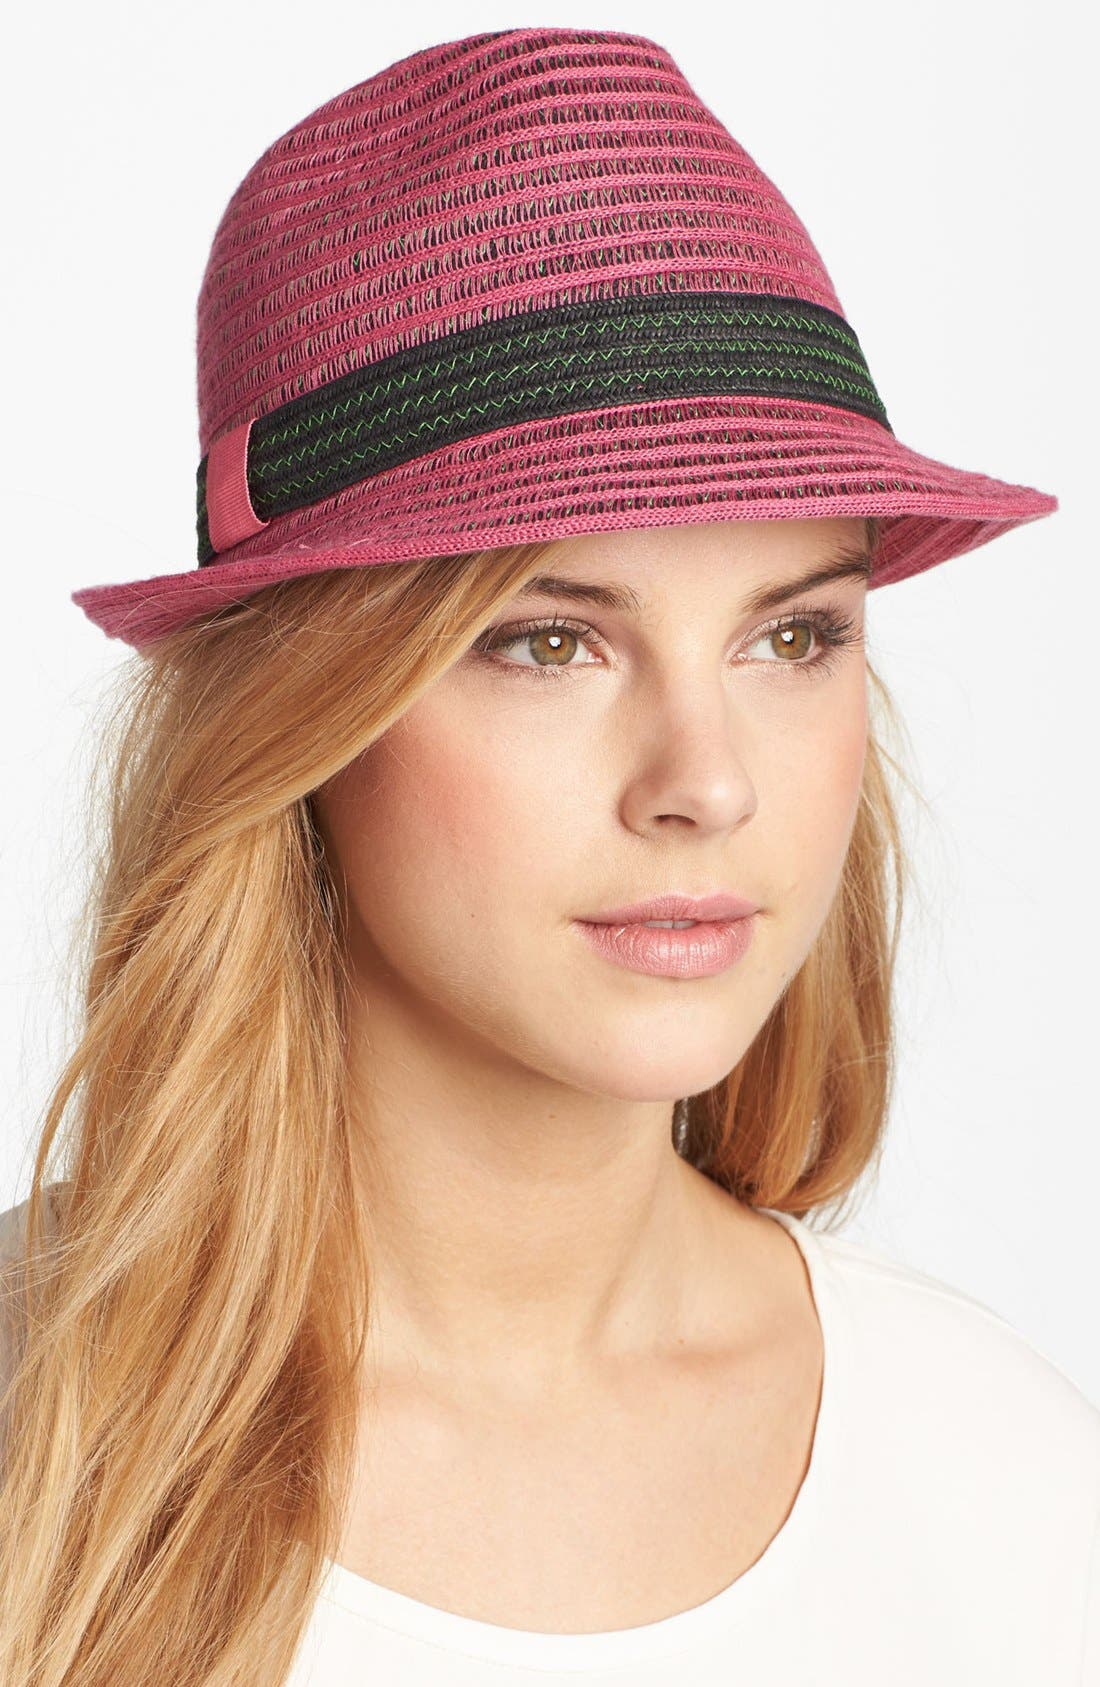 Alternate Image 1 Selected - Nordstrom Cotton Mesh Fedora